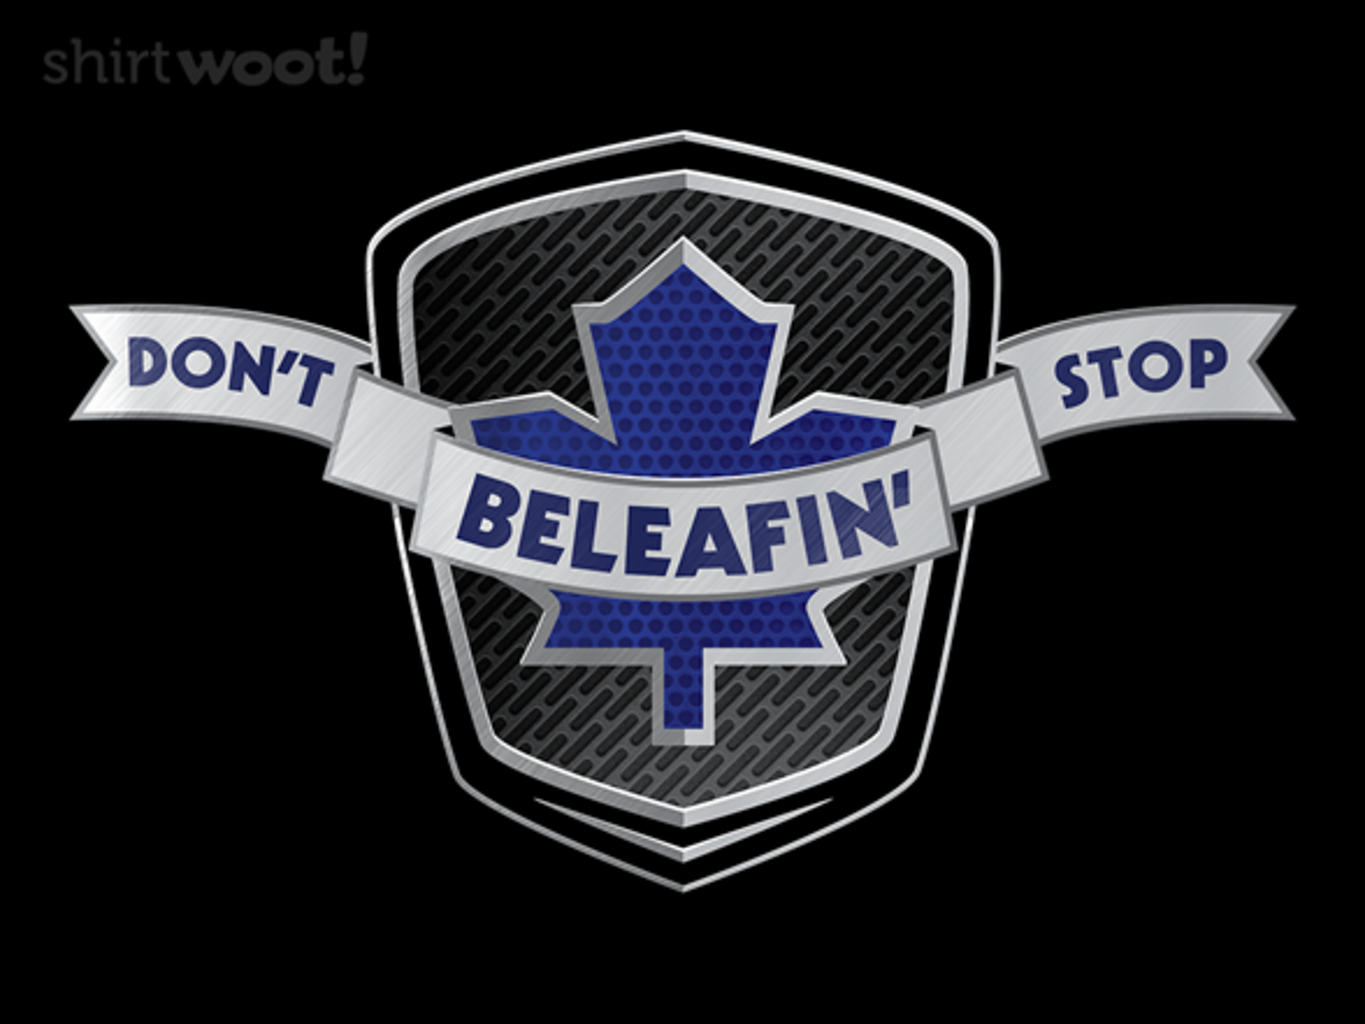 Woot!: Don't Stop beLEAFin